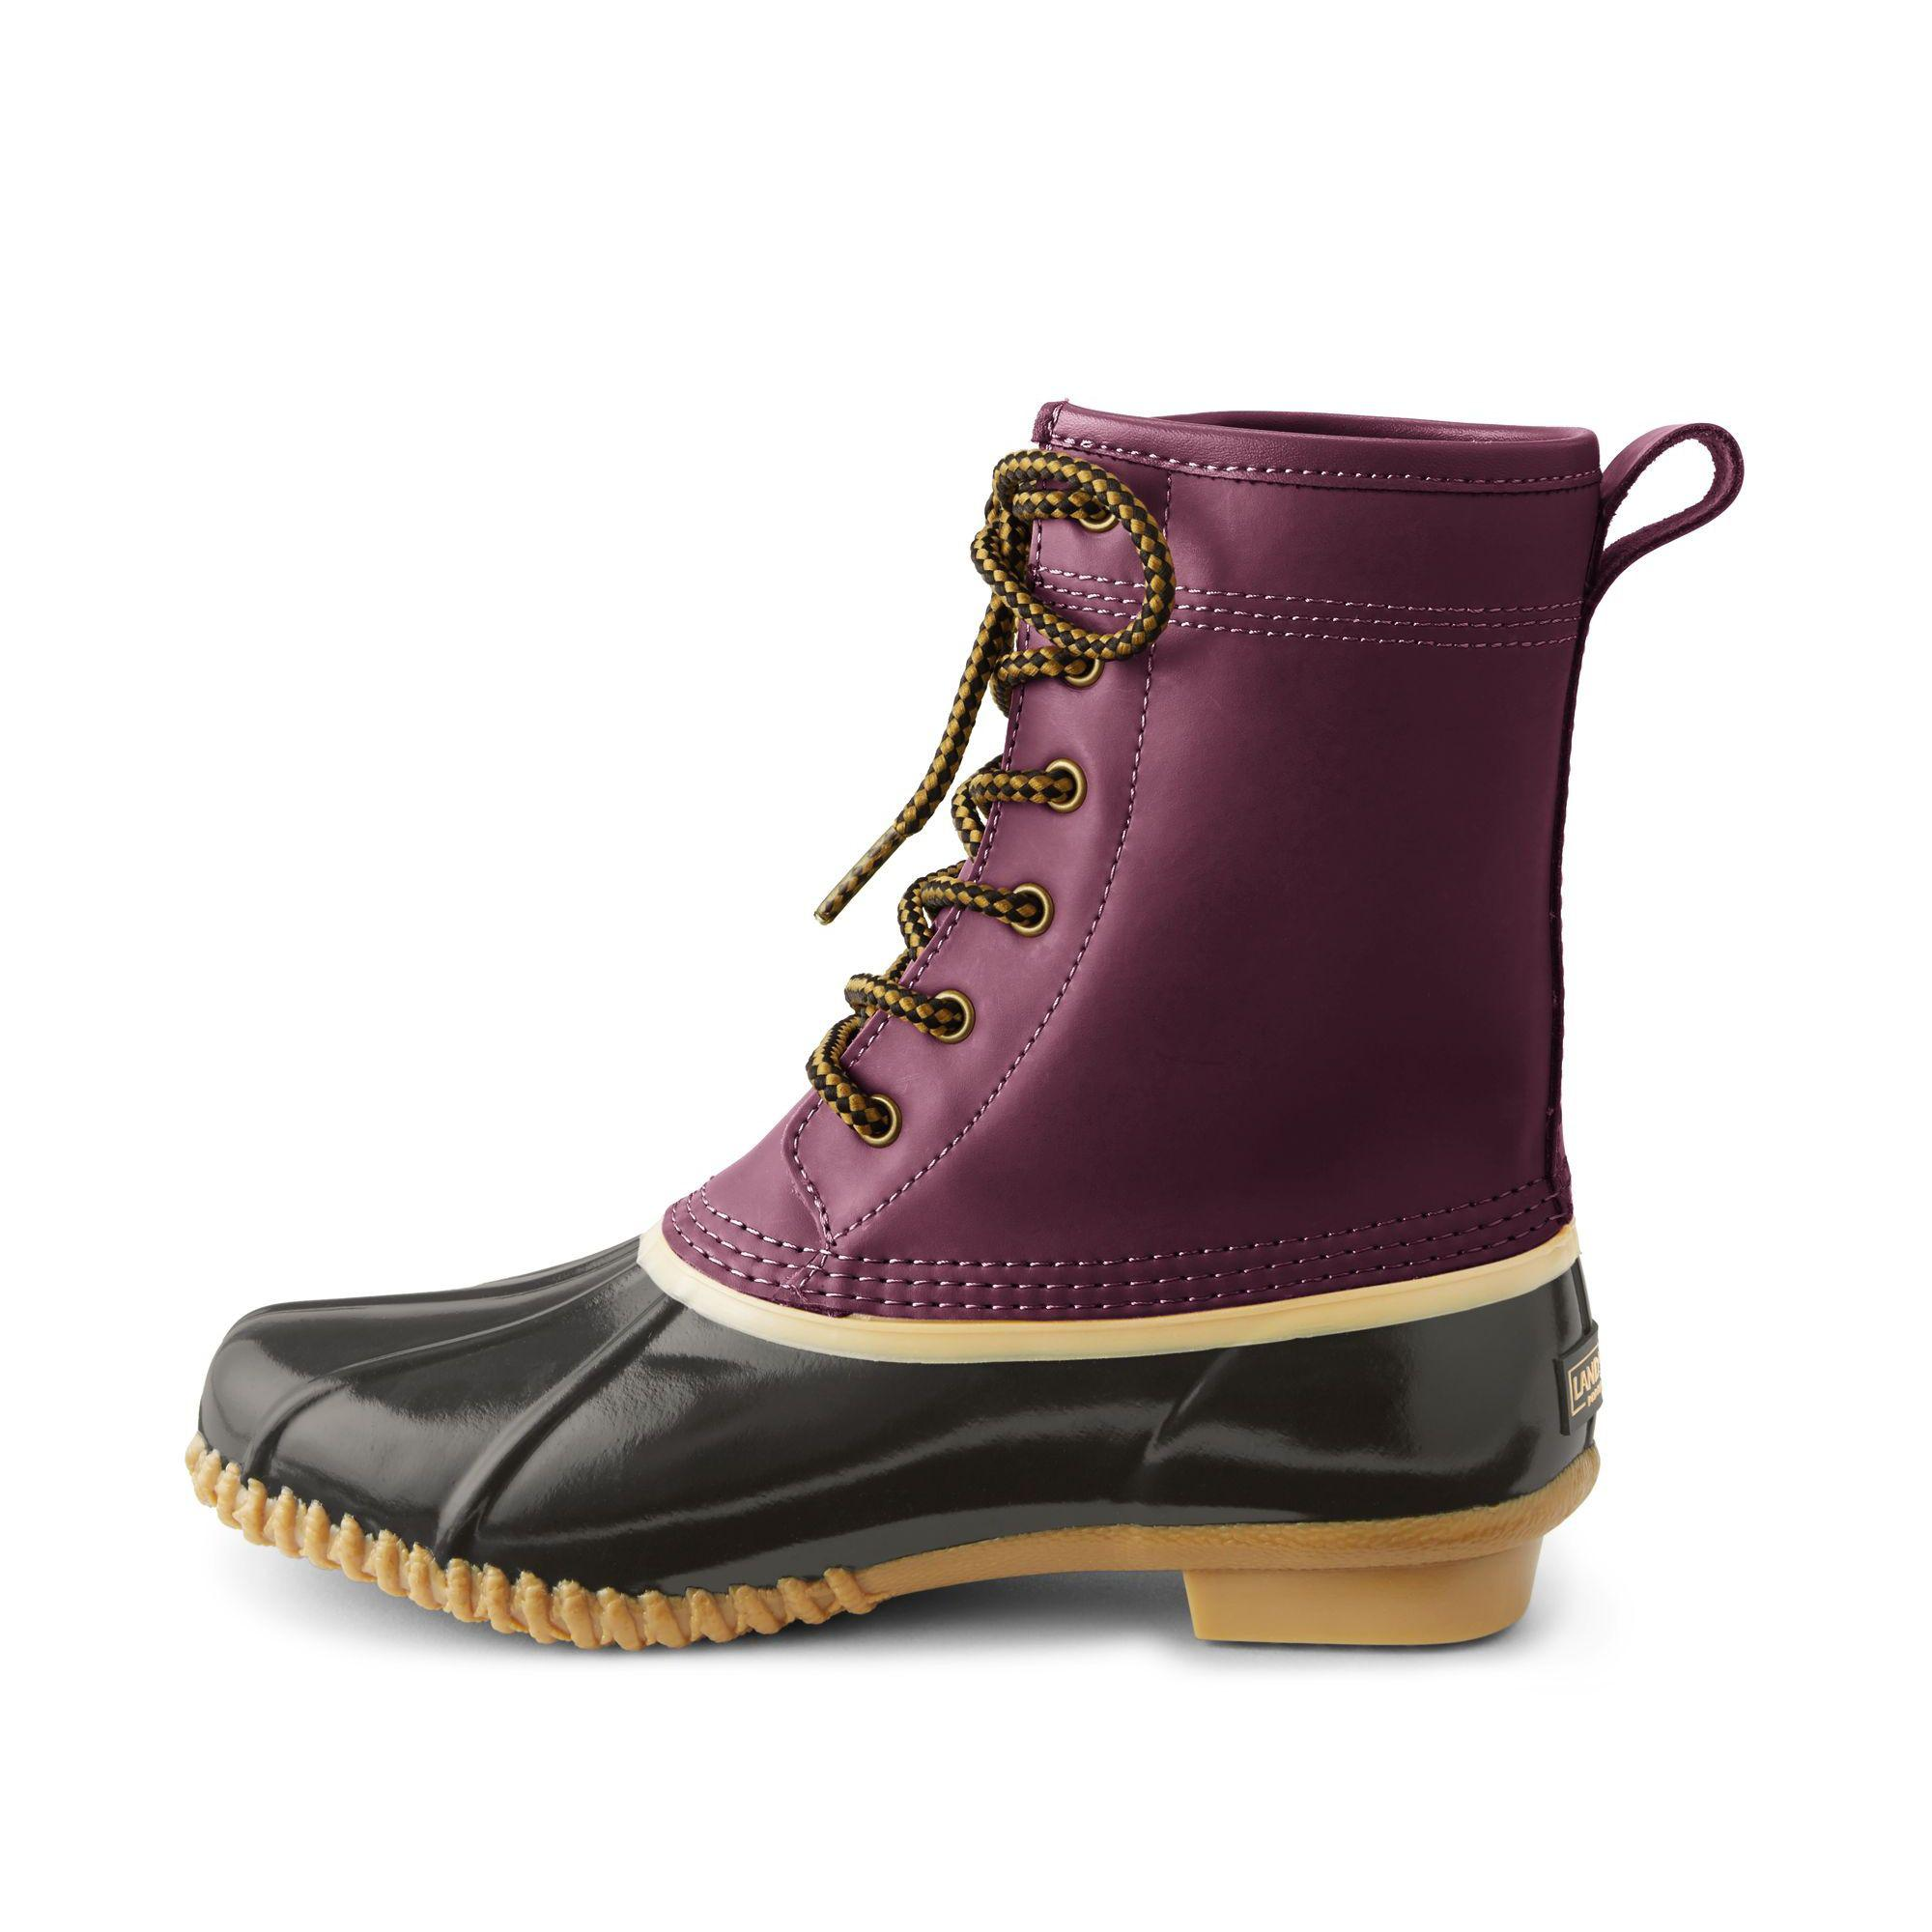 79d1f67cedb48 Lands' End Red Duck Boots in Red - Save 40% - Lyst